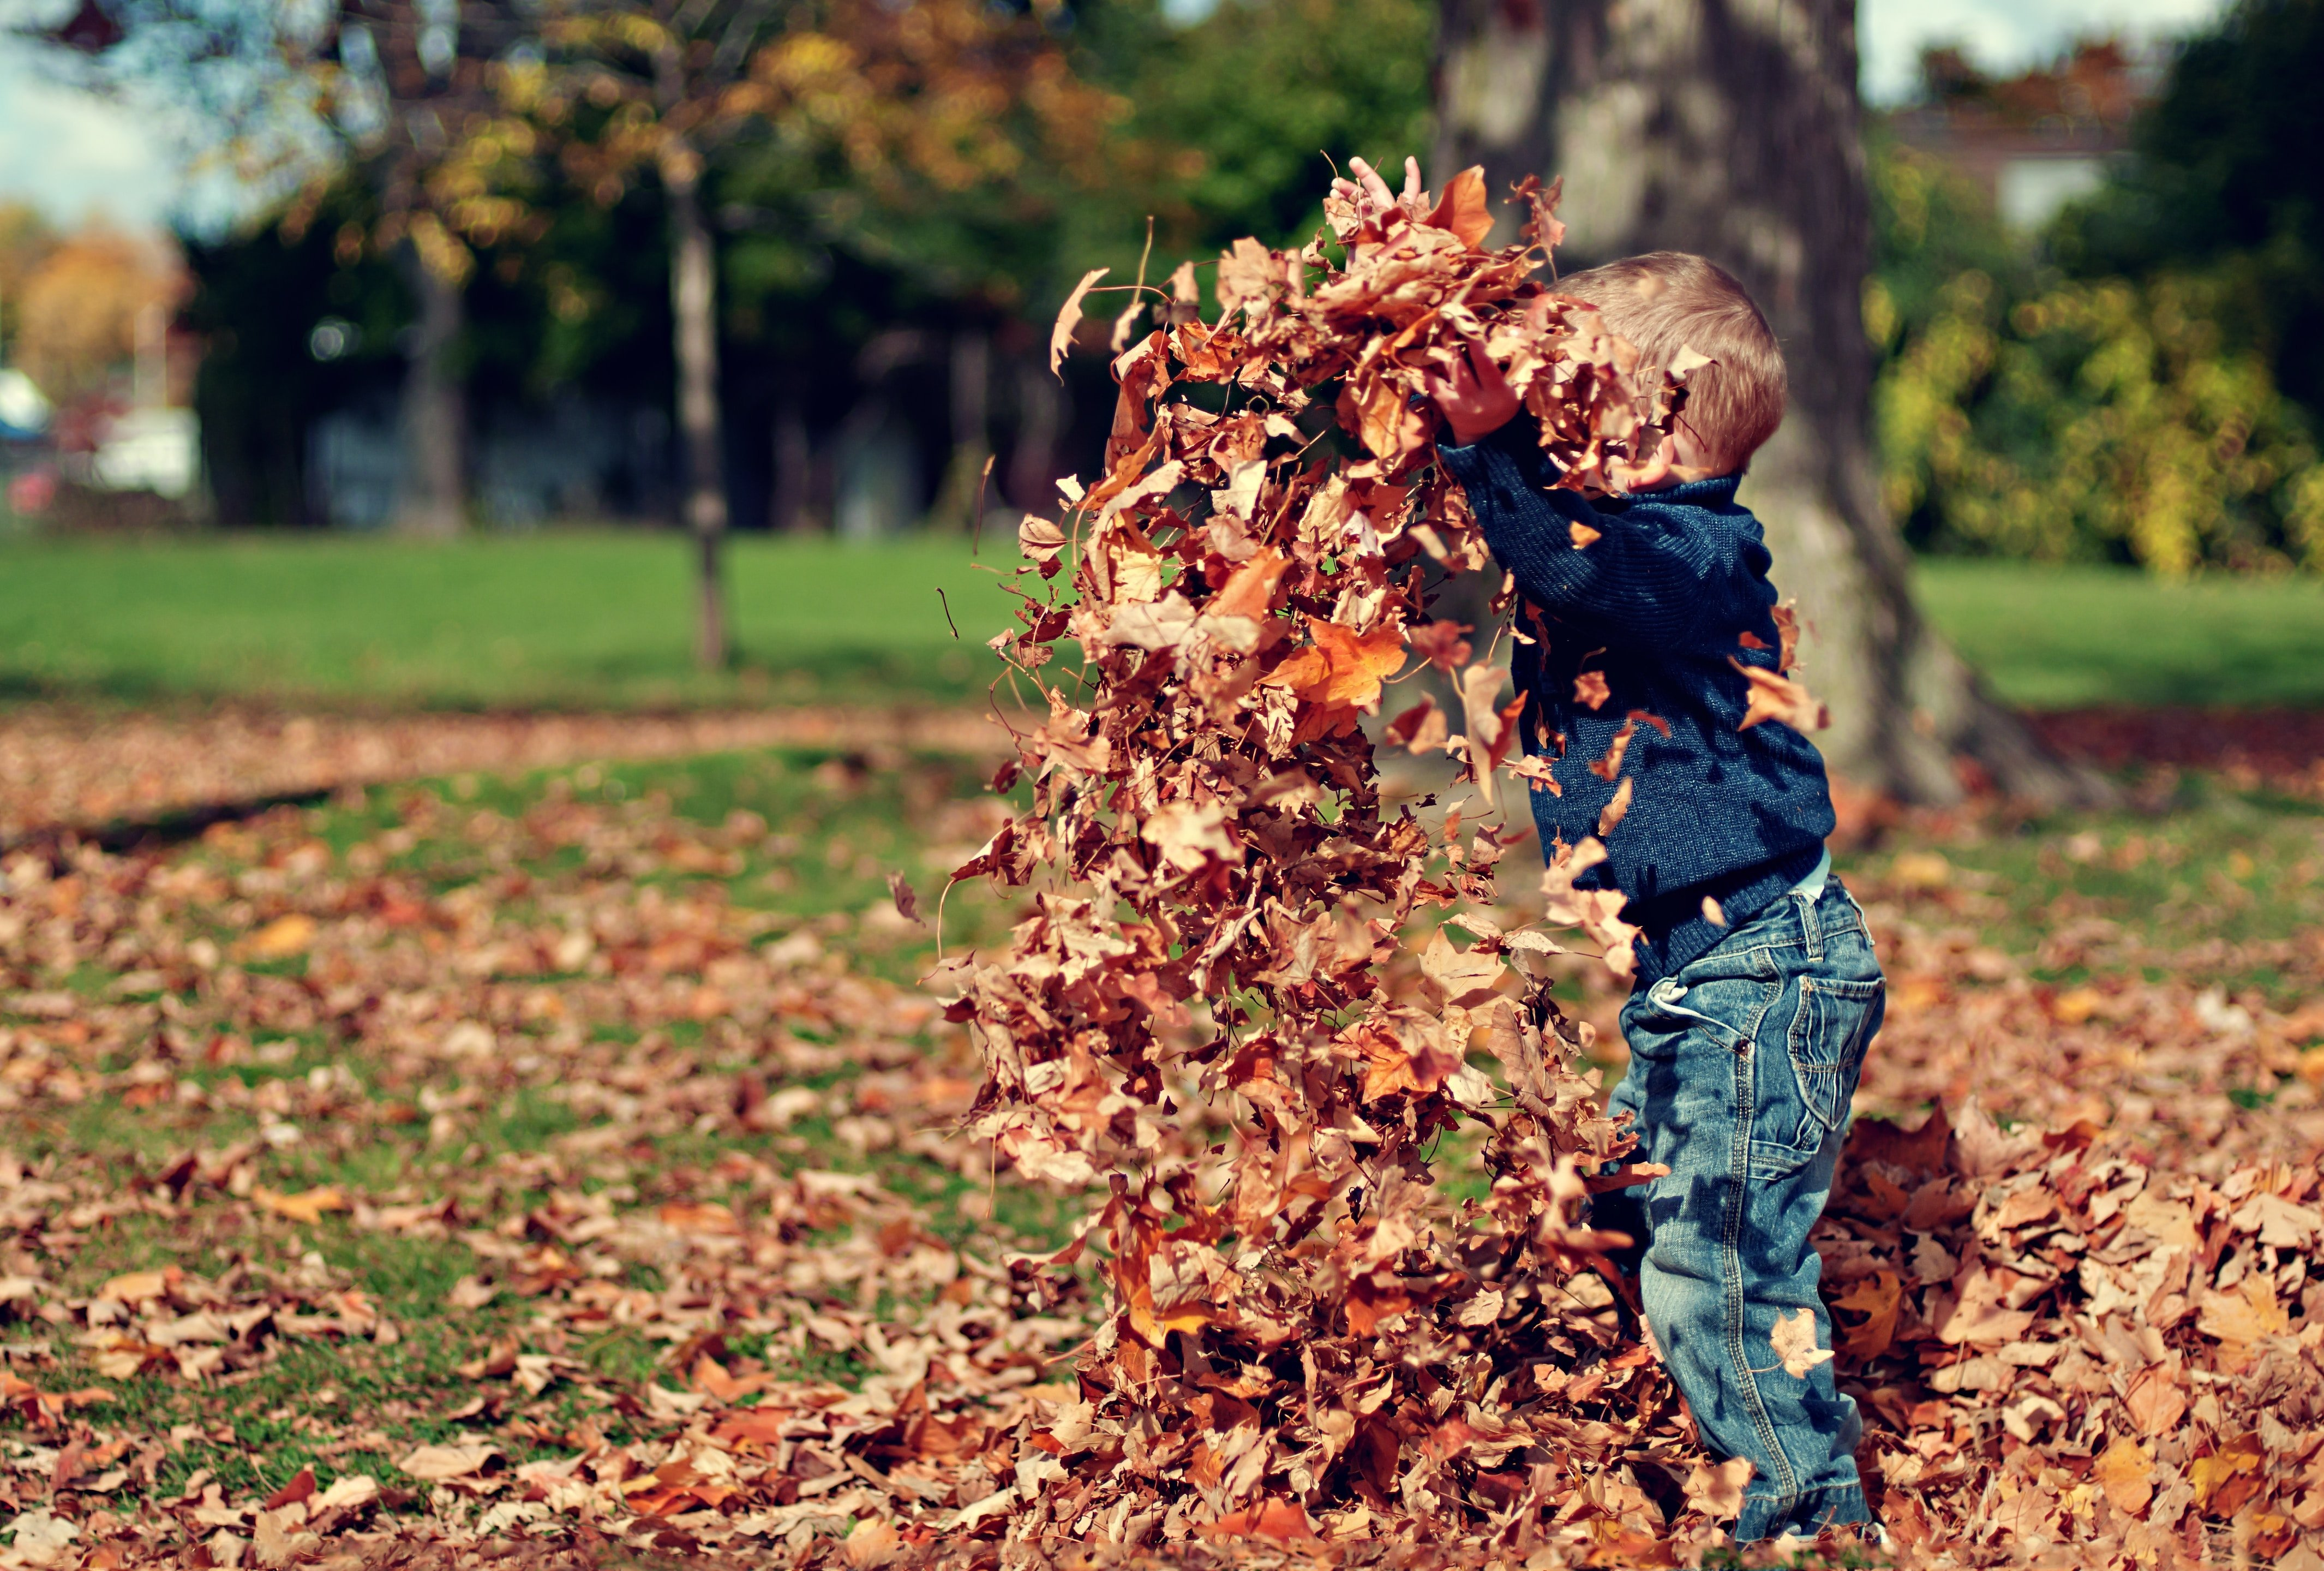 A child playing with the raked leaves | Source: Unsplash.com